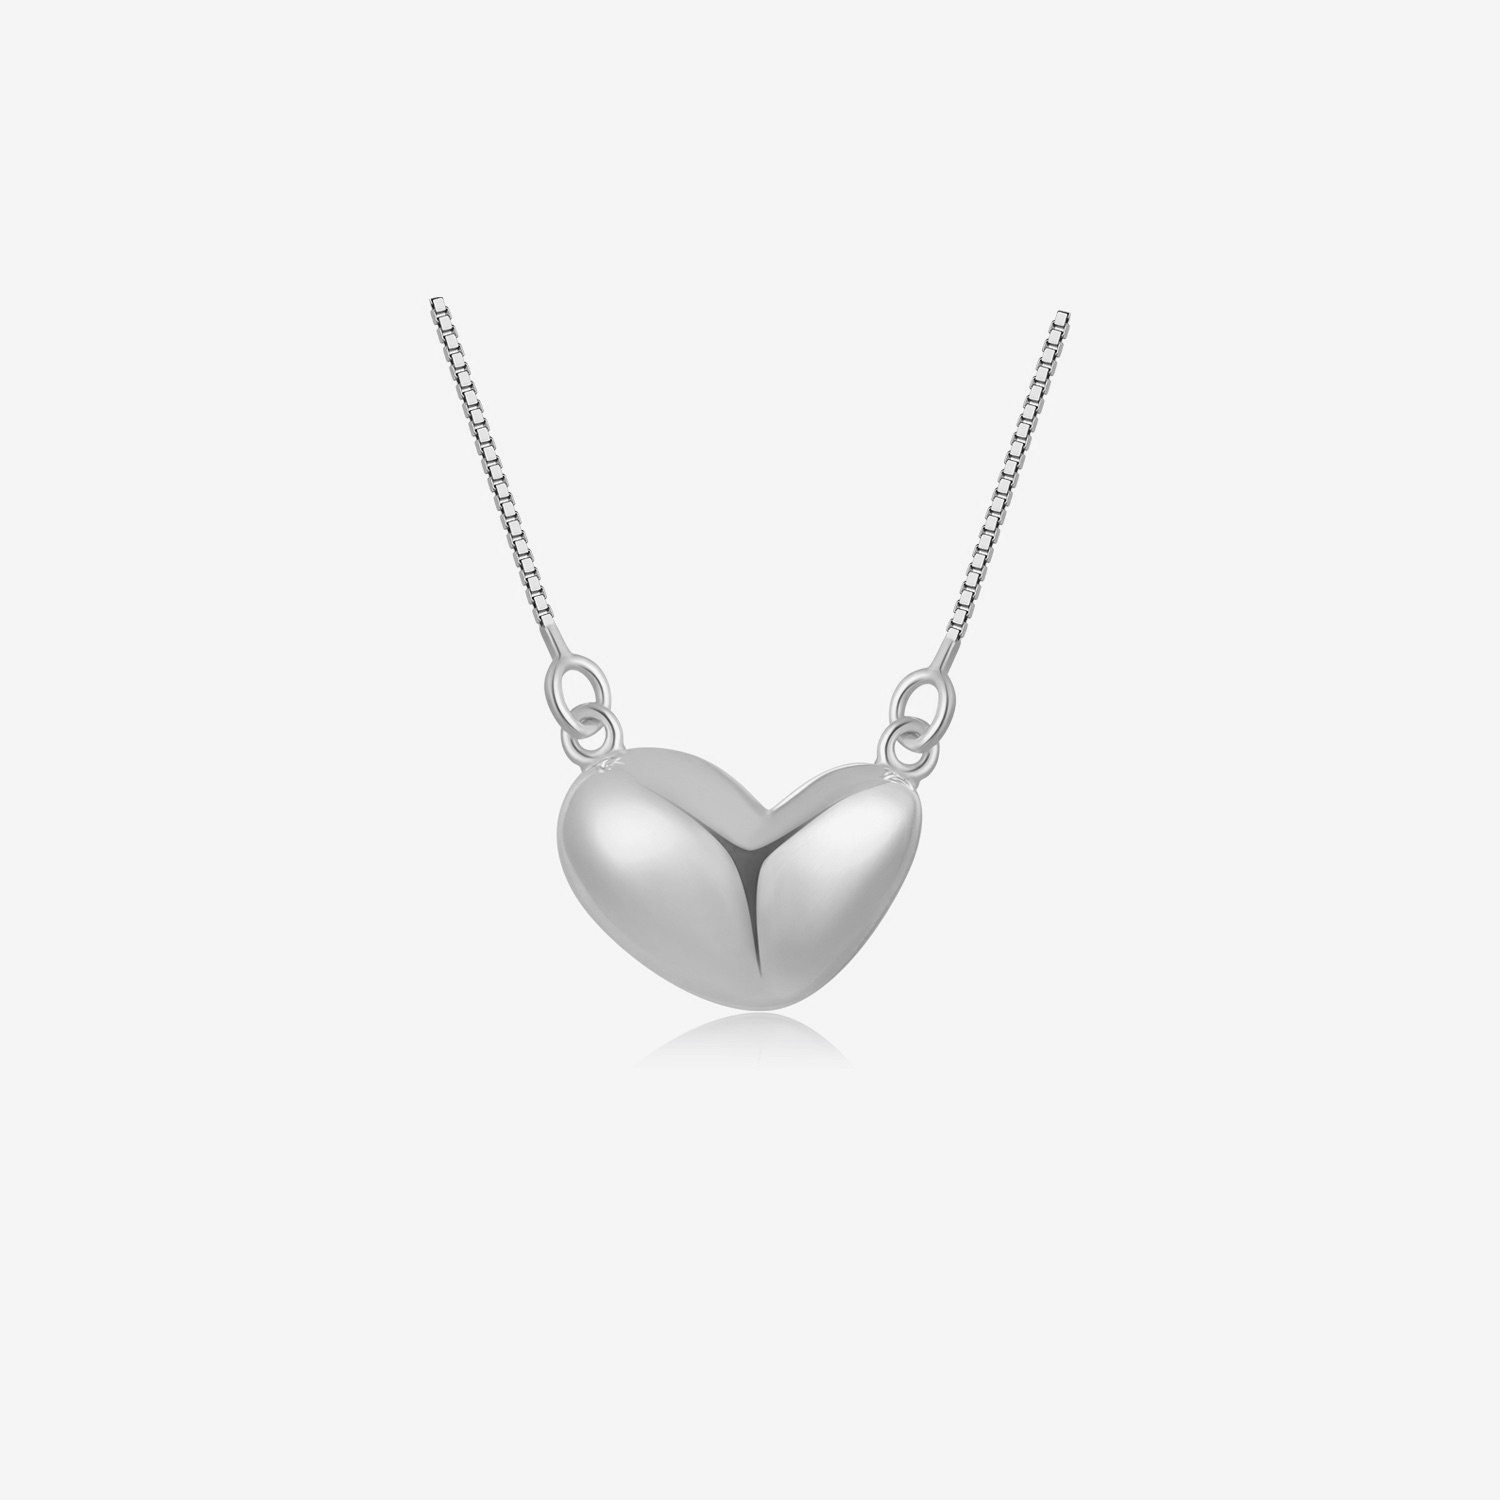 Heart Pendant Necklace - Gold by Emili on curated-crowd.com